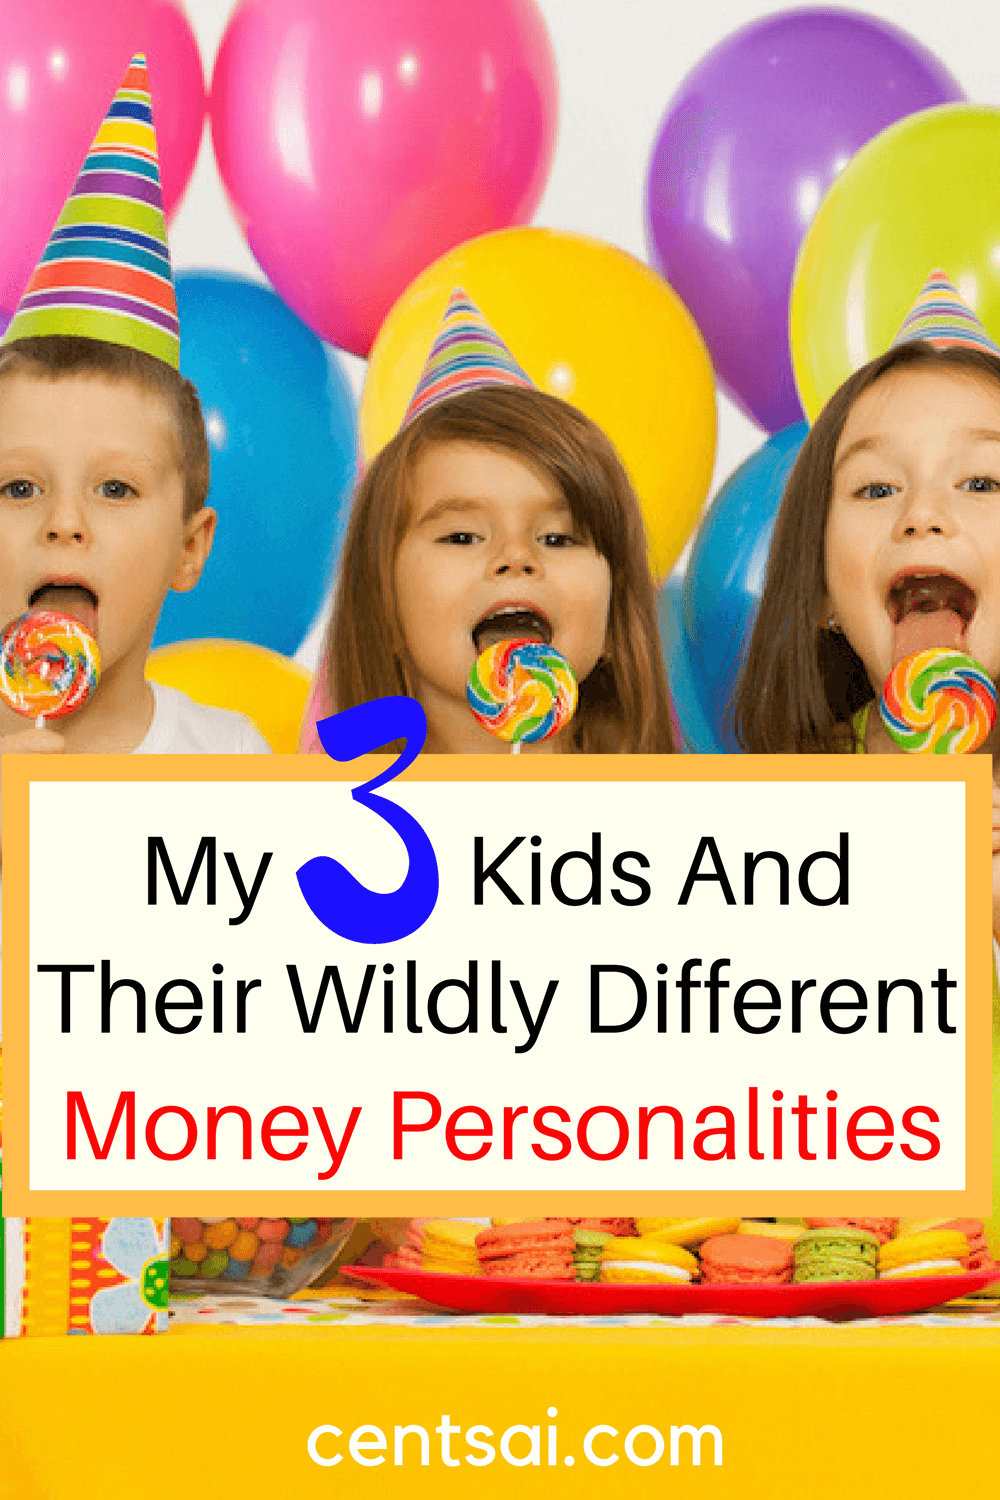 My 3 Kids And Their Wildly Different Money Personalities